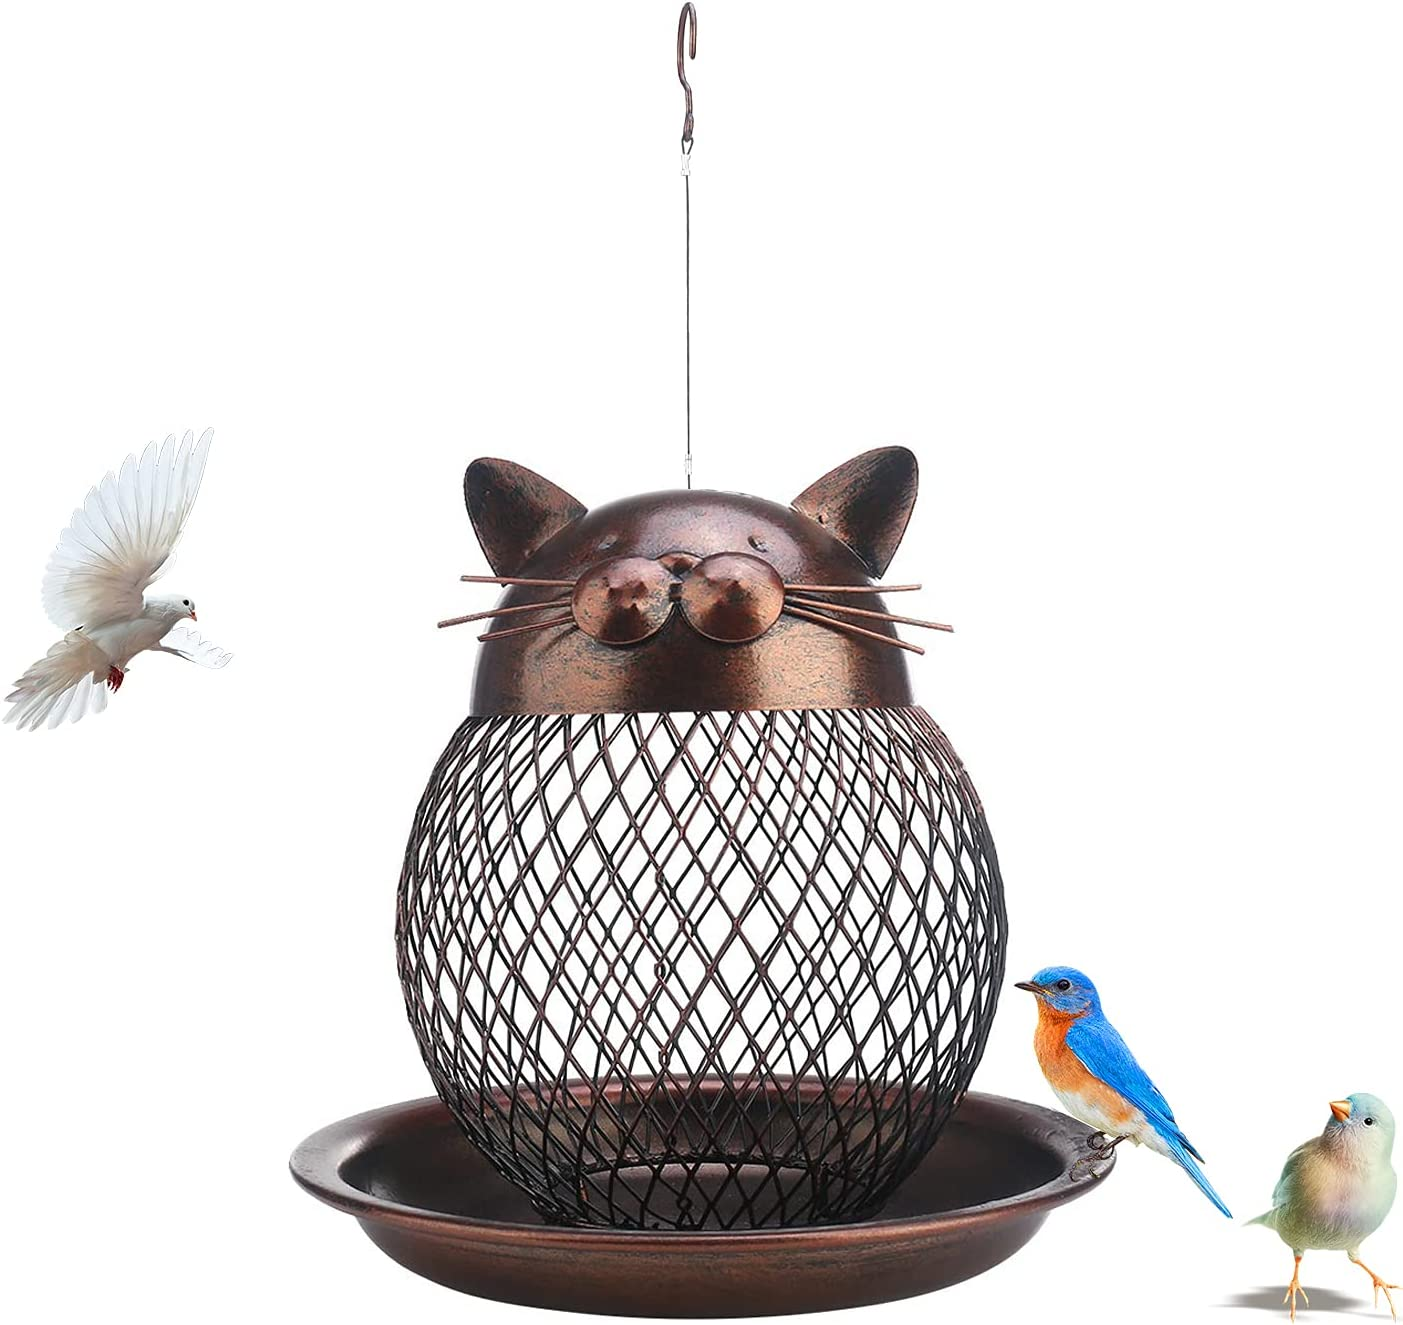 Bird Feeder for Outside Heavy Duty Metal Wild Bird Feeders with Drainage Holes Squirrel Proof Bird Feeder Unique Cat Shaped Bird Feeders Hanging for Outdoor Garden Yard Balcony Decoration